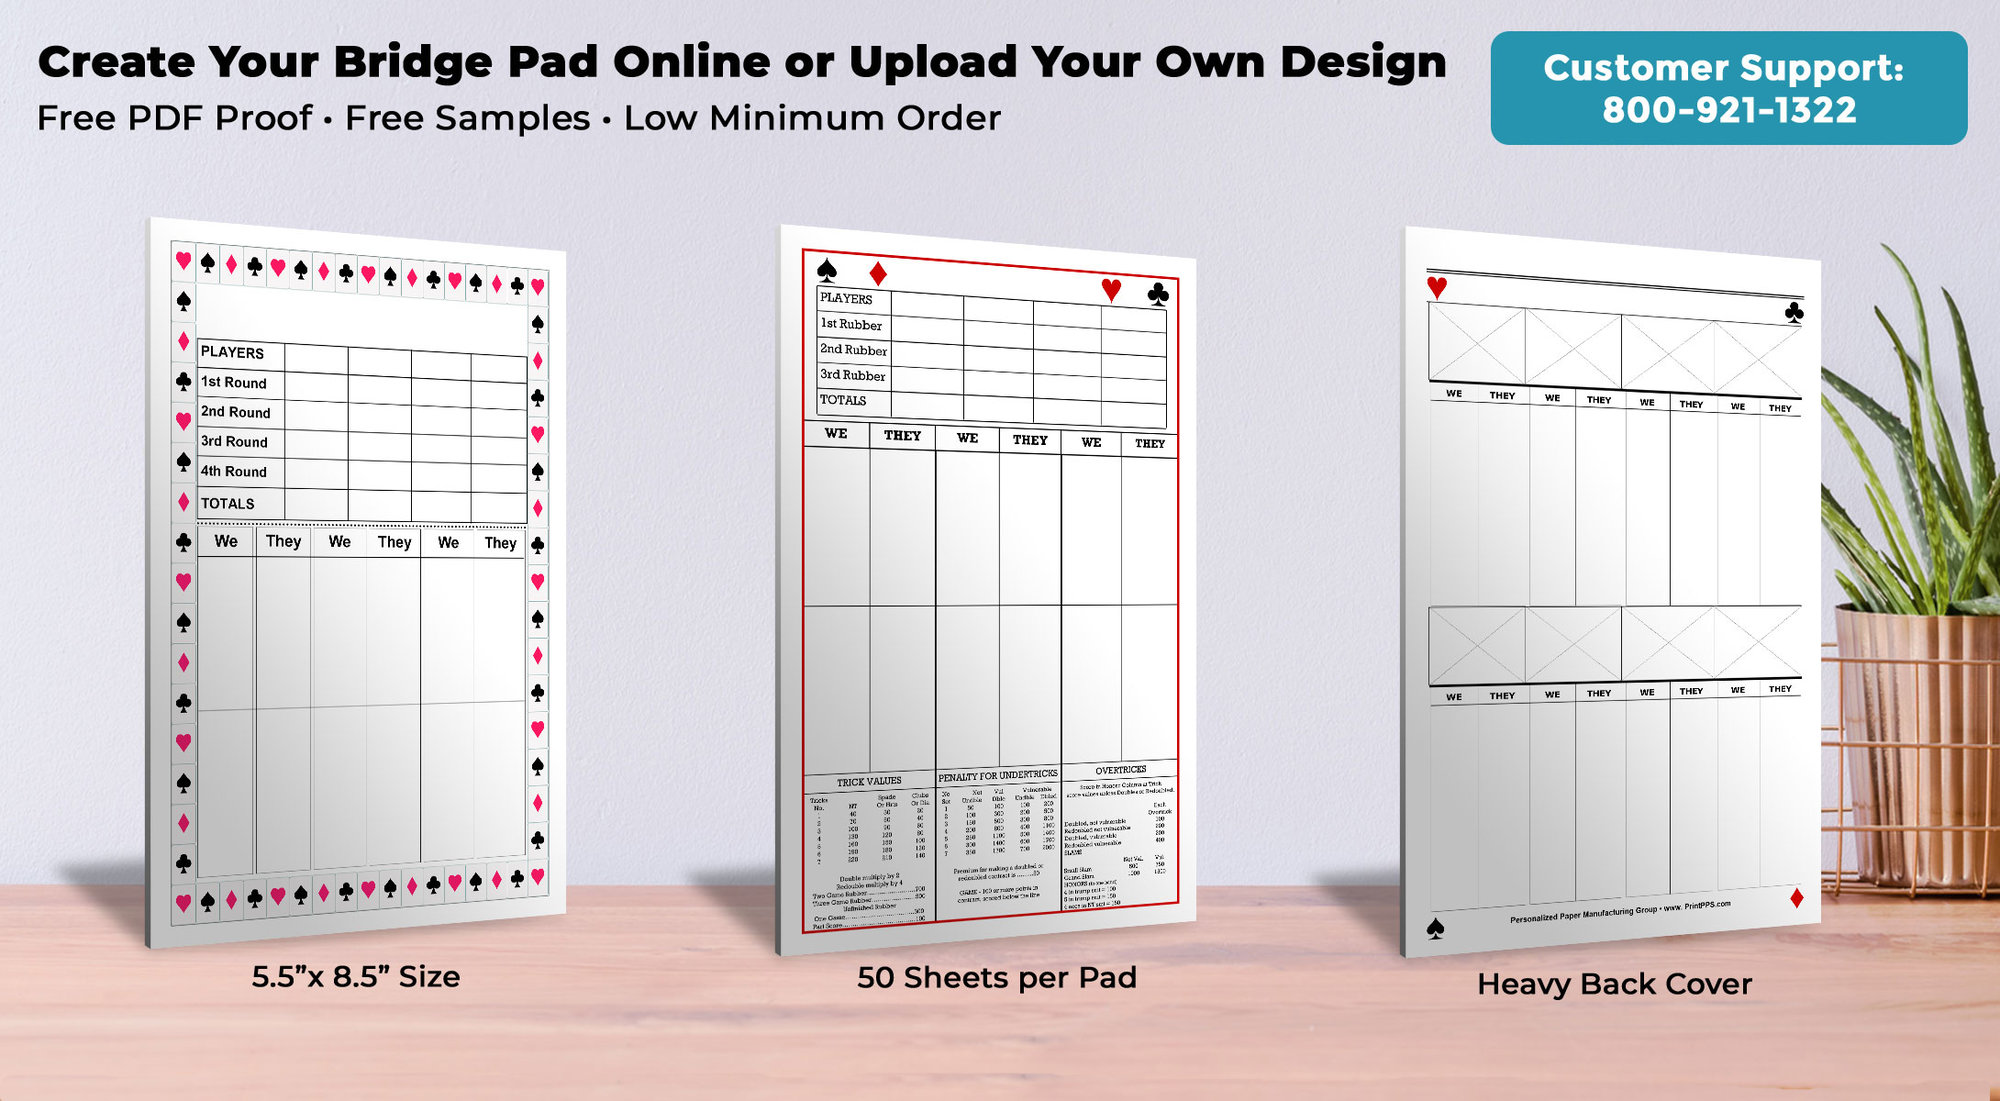 https://printpps.com/images/products_gallery_images/NON-Bridge-Notepads_Product-Page-Banner_221.jpg